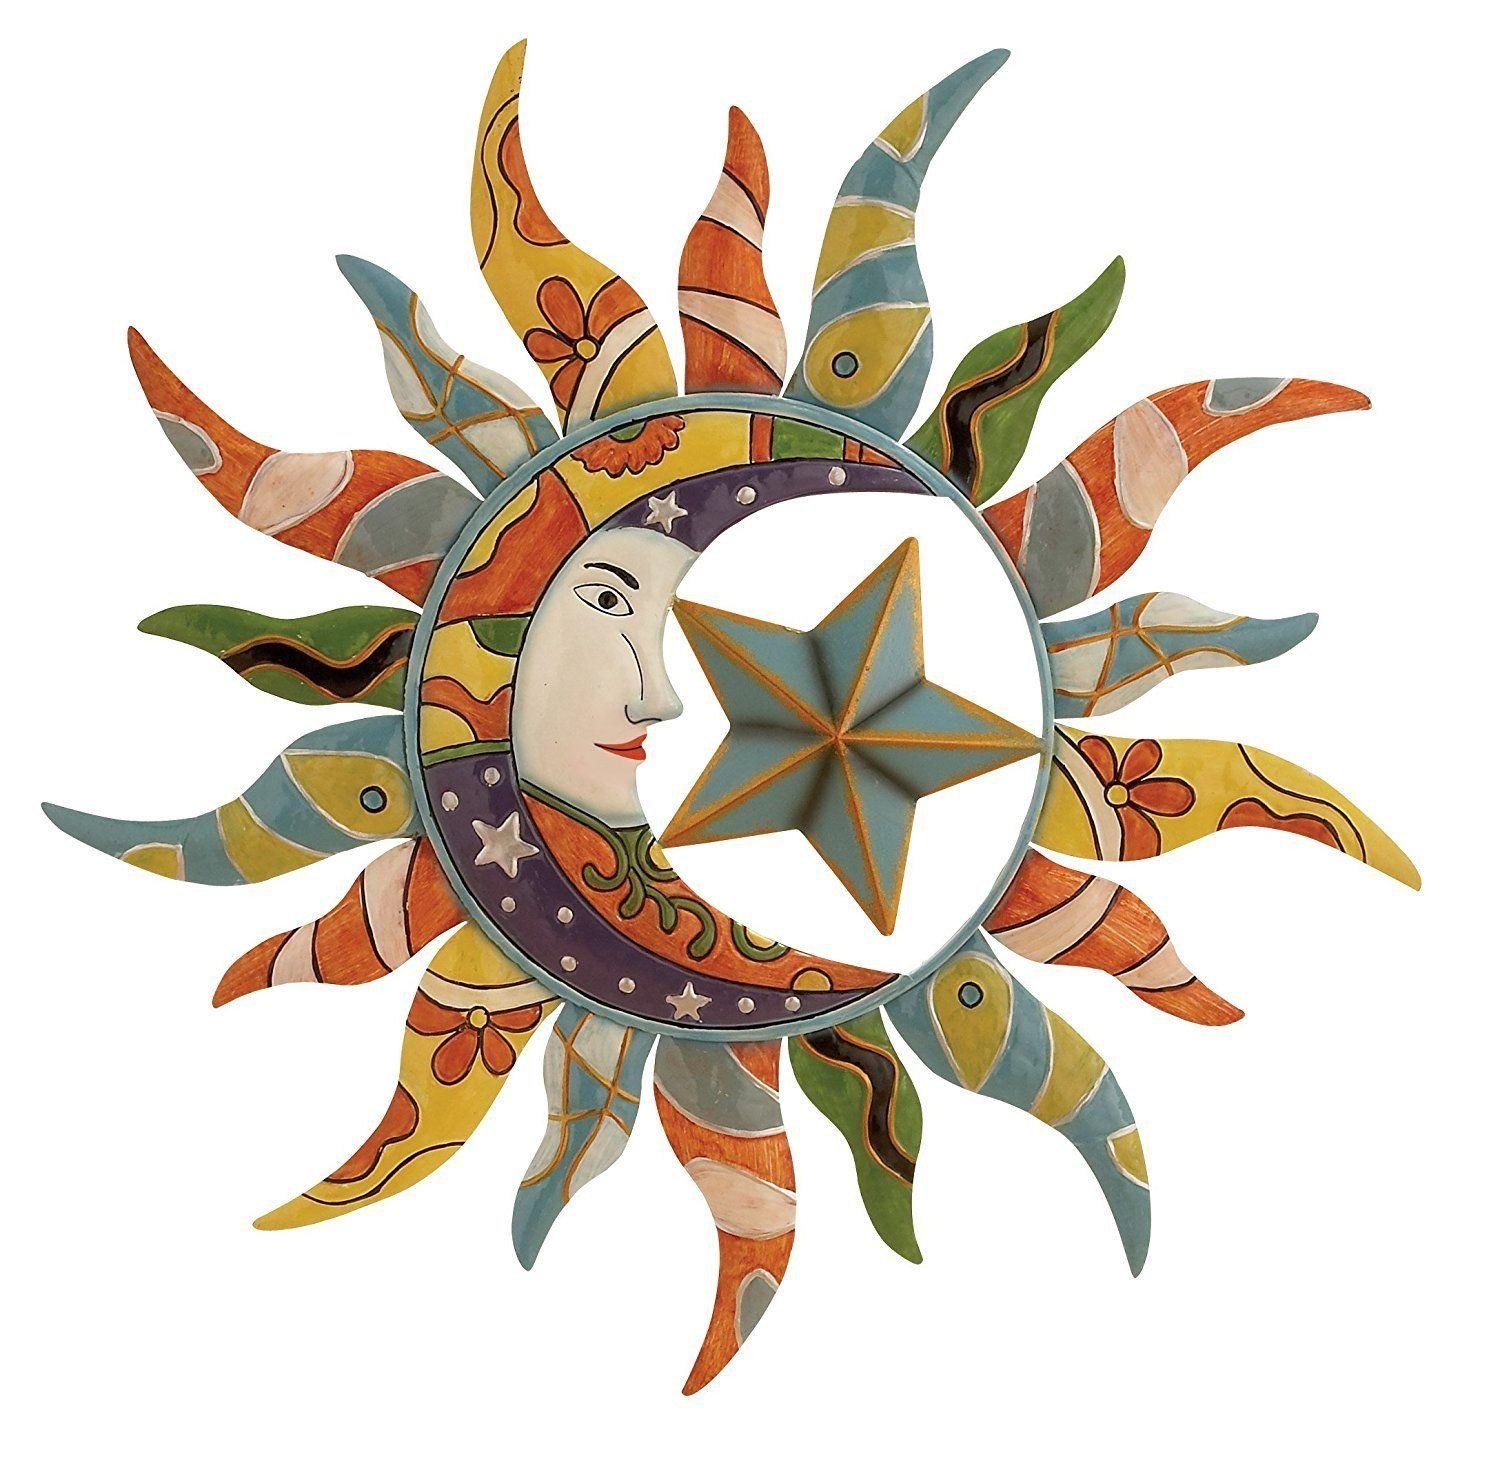 Metal Wall Art Mexican Moon Star Hanging Garden Decor Home Indoor In Mexican Metal Wall Art (View 7 of 20)